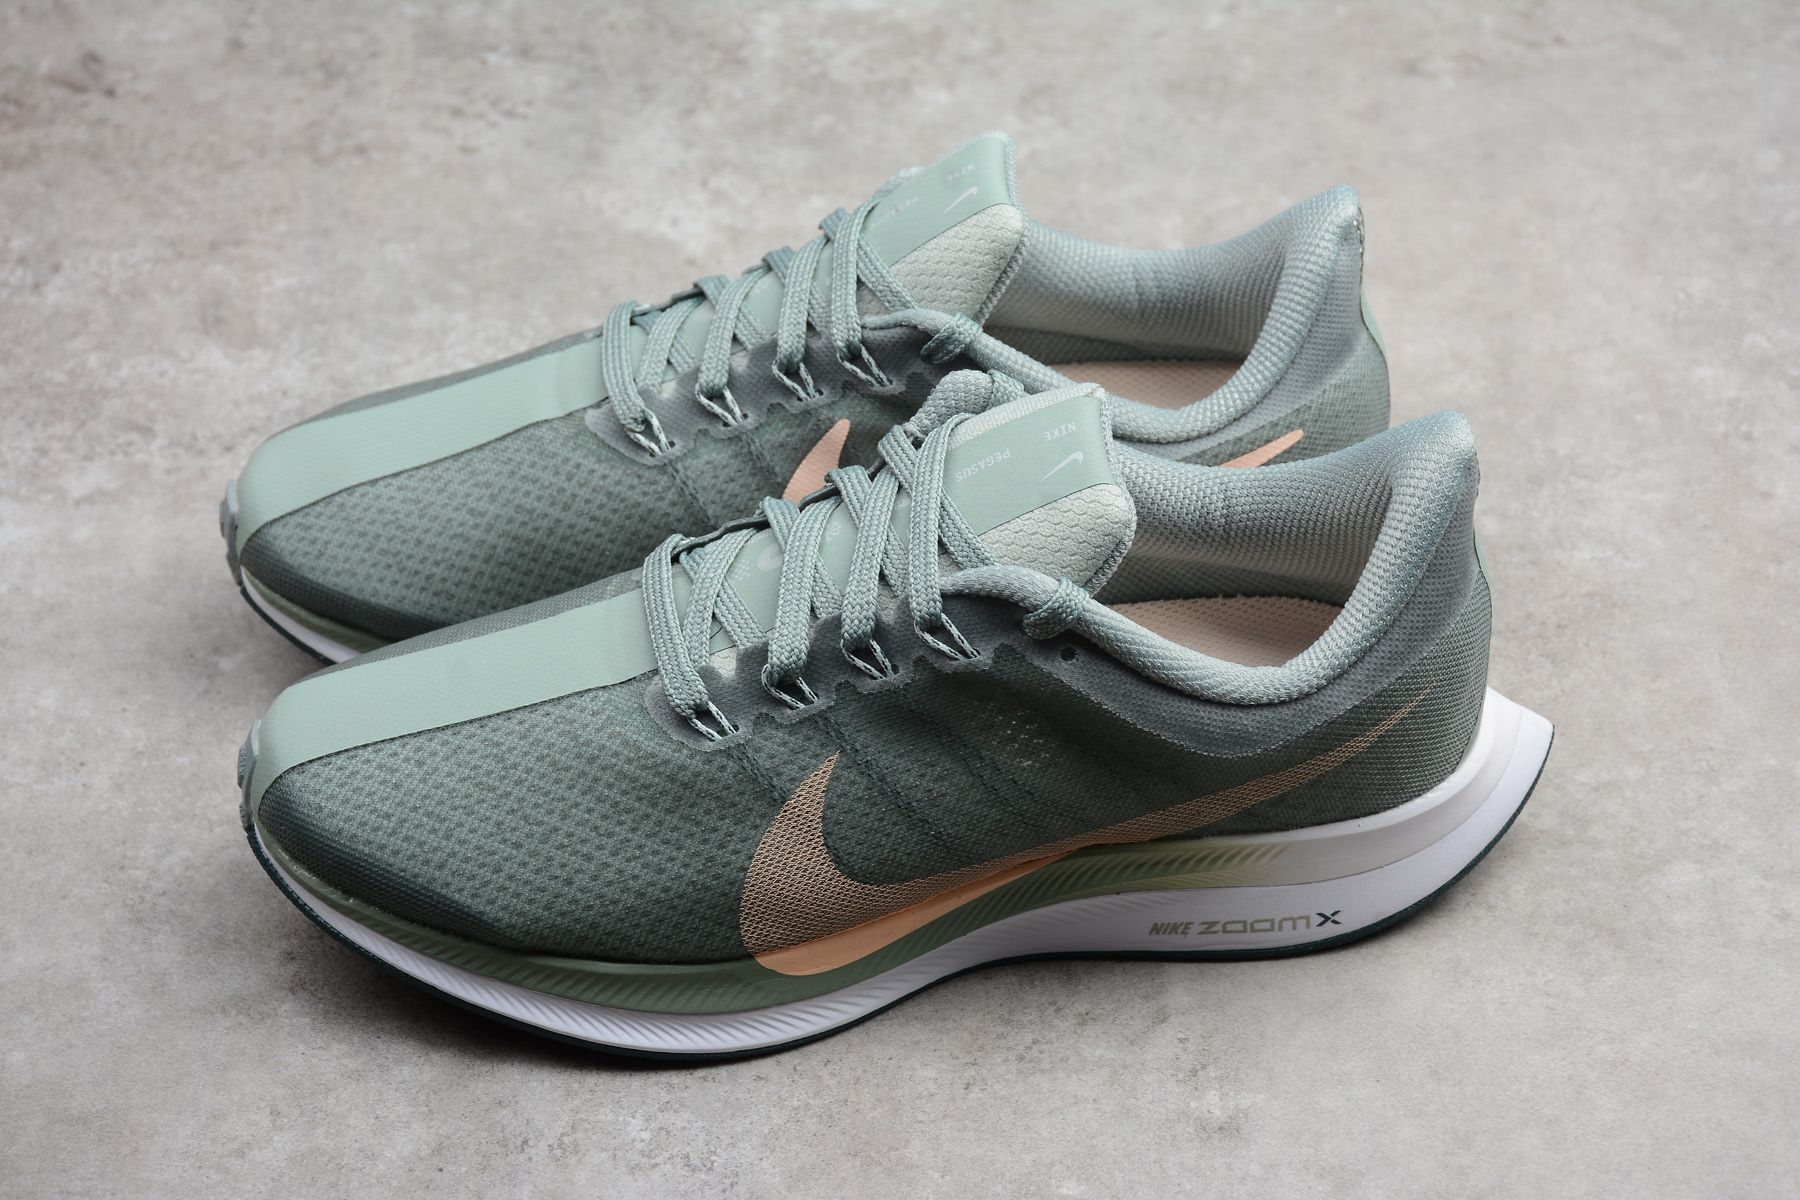 Nike Zoom Grey And Green Nike Zoom Pegasus 35 Turbo Mica Green Women S Running Shoes